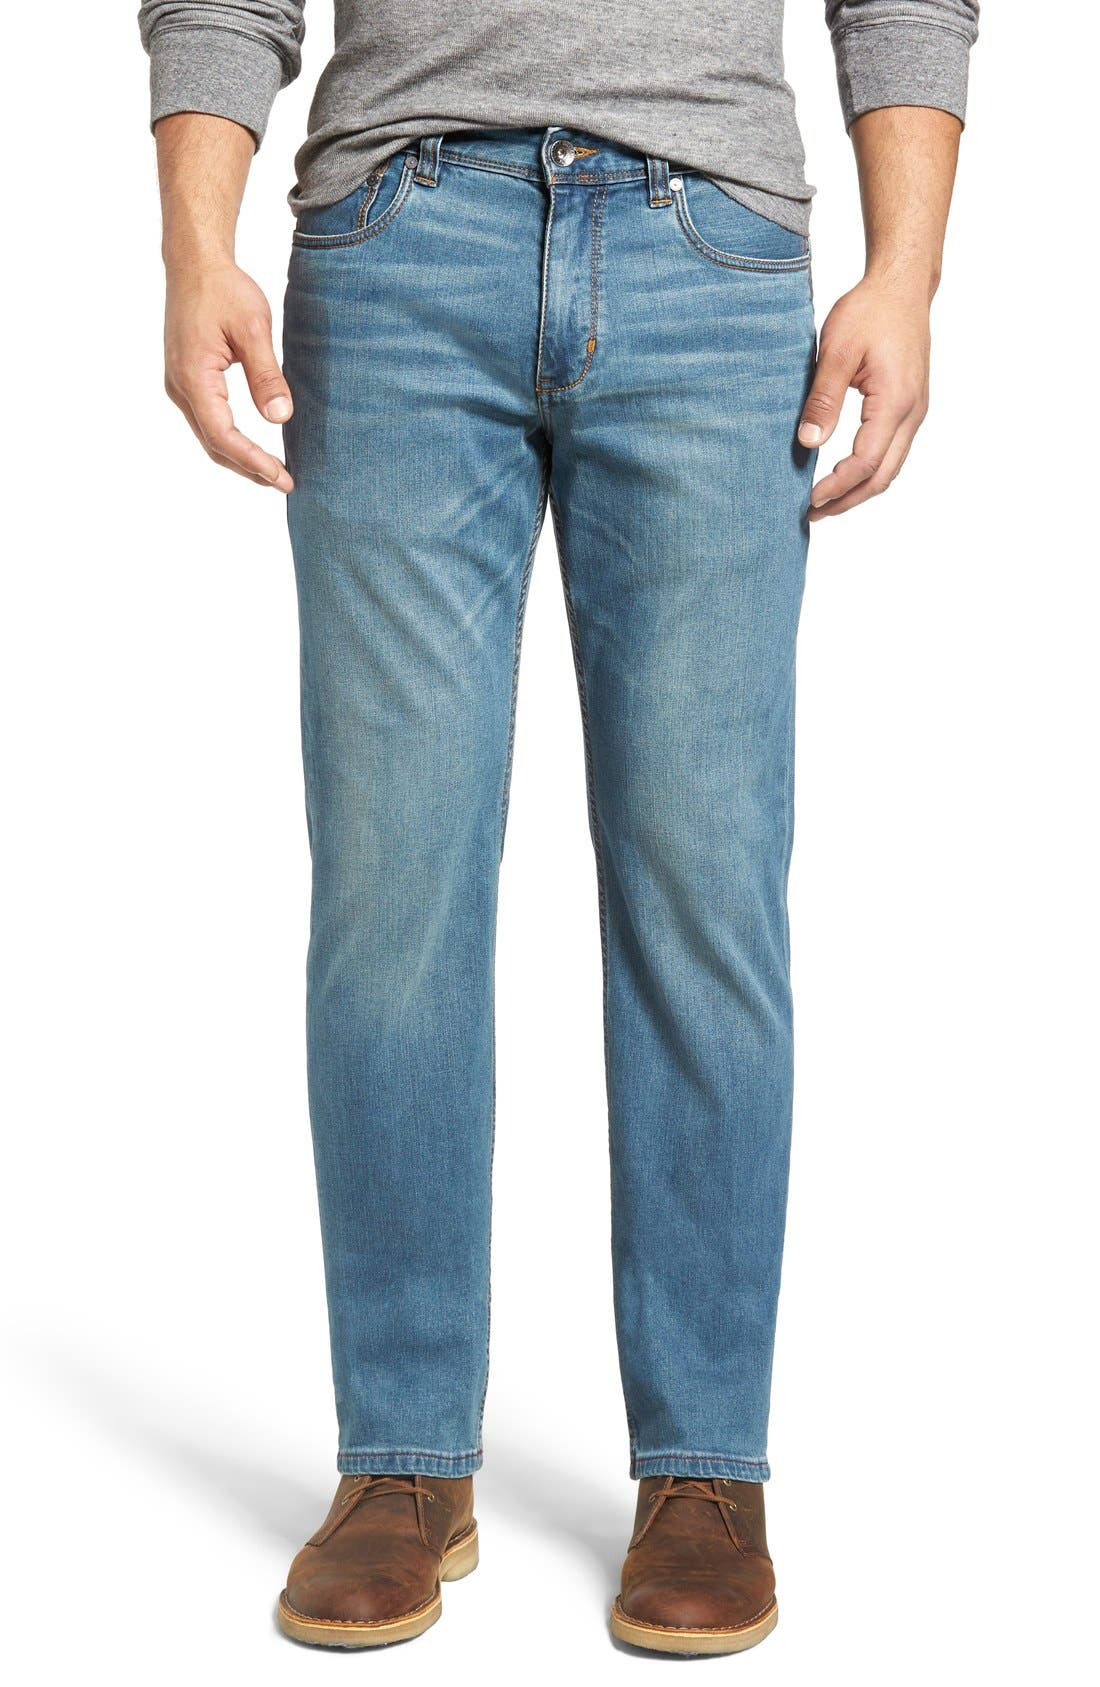 Sand Drifter Straight Leg Jeans,                         Main,                         color, Vintage Wash